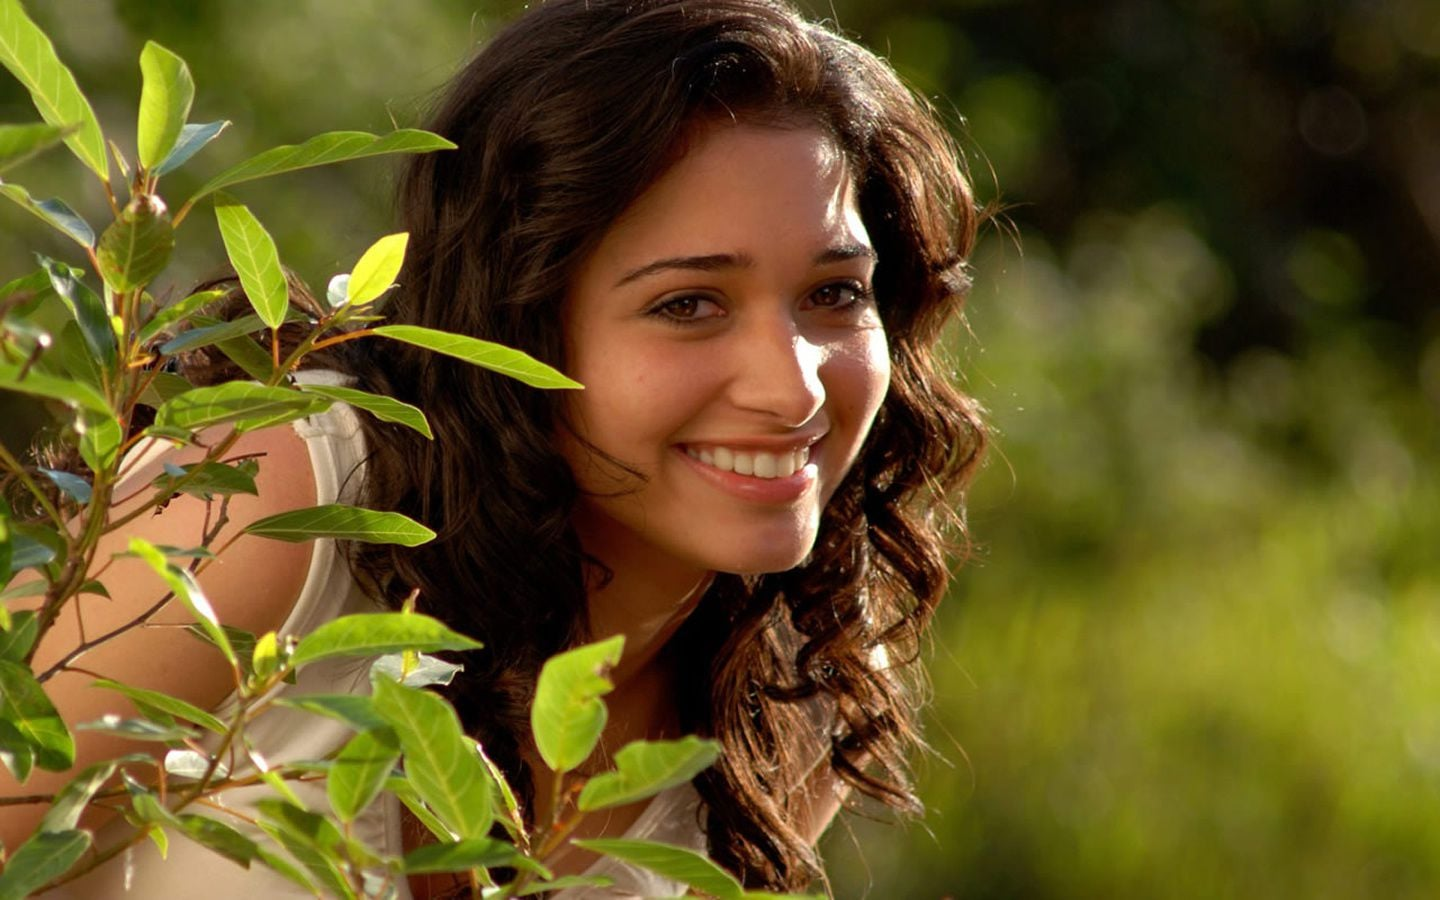 Tamannaah Bhatia smiling HD 1080p wallpaper